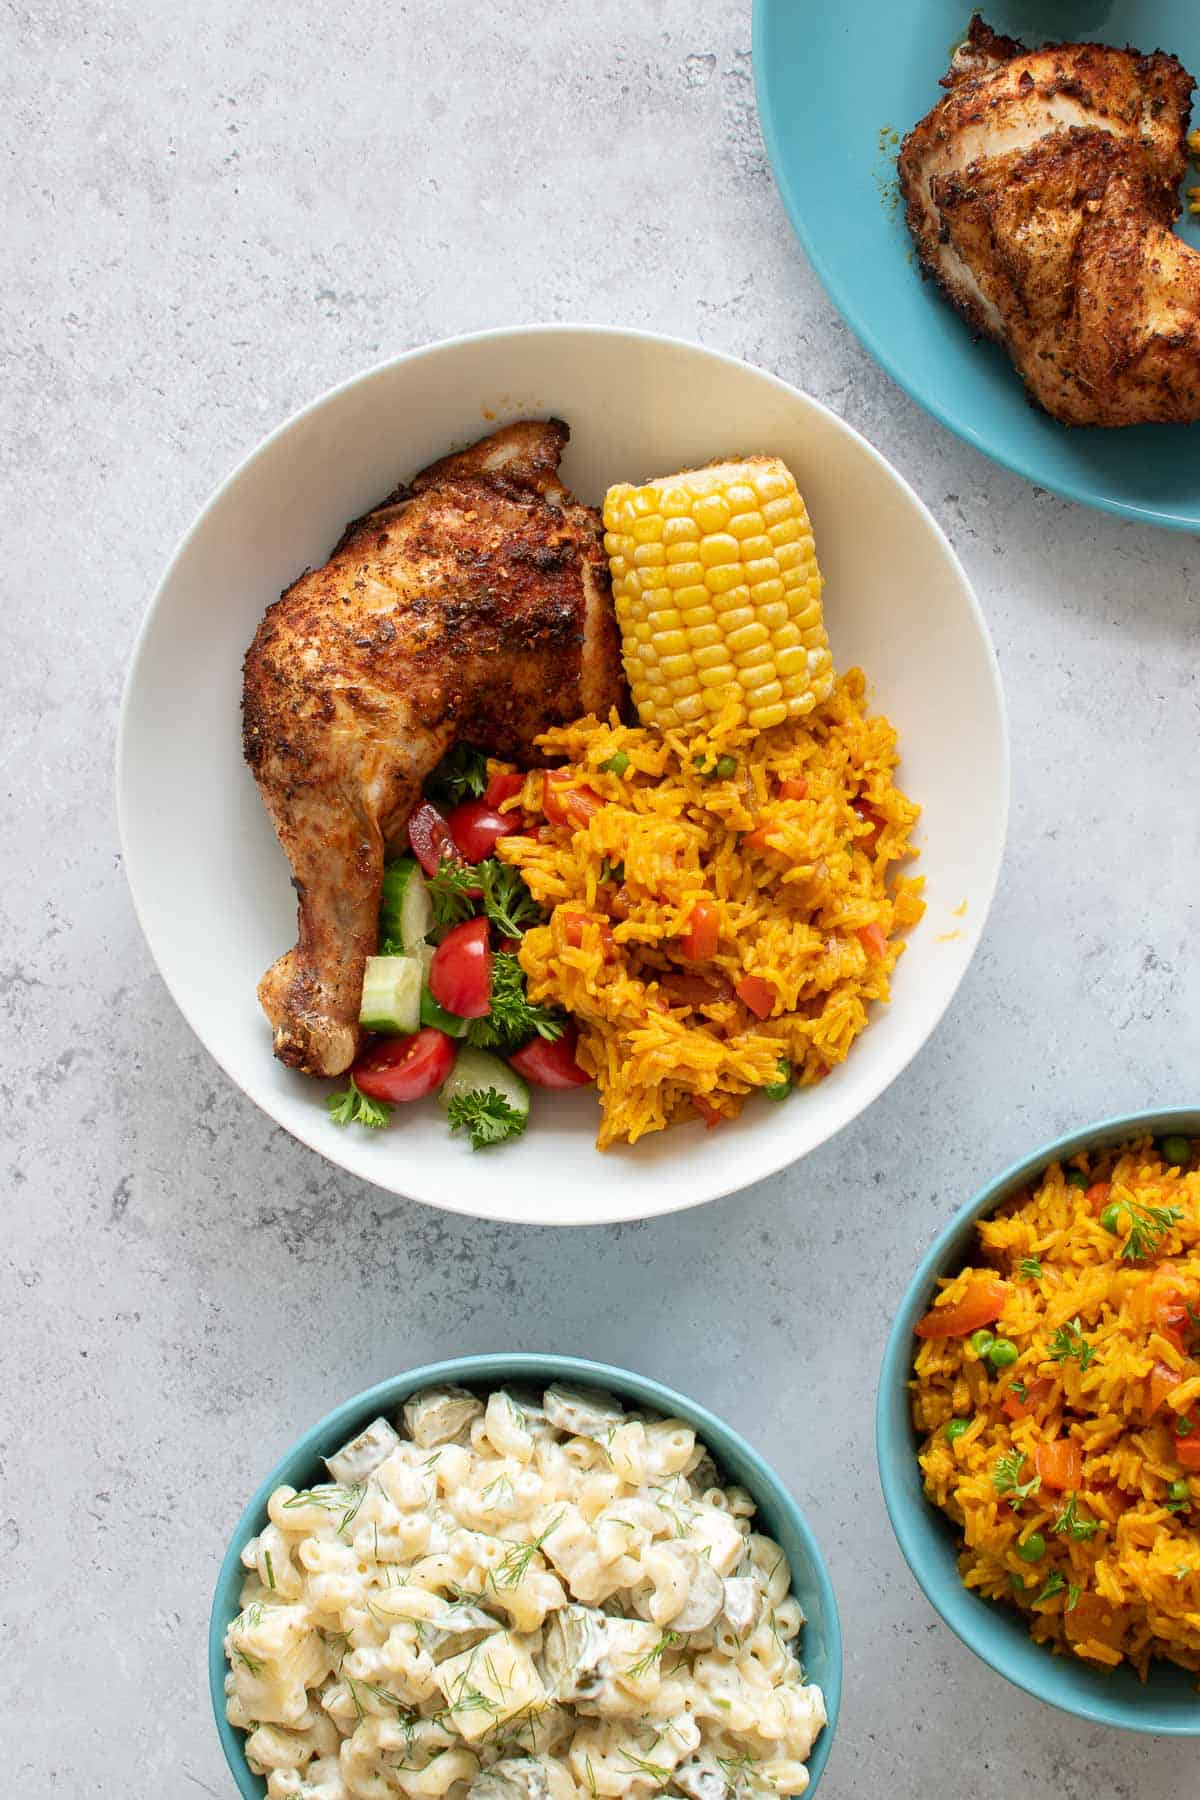 Peri peri chicken and side dishes.